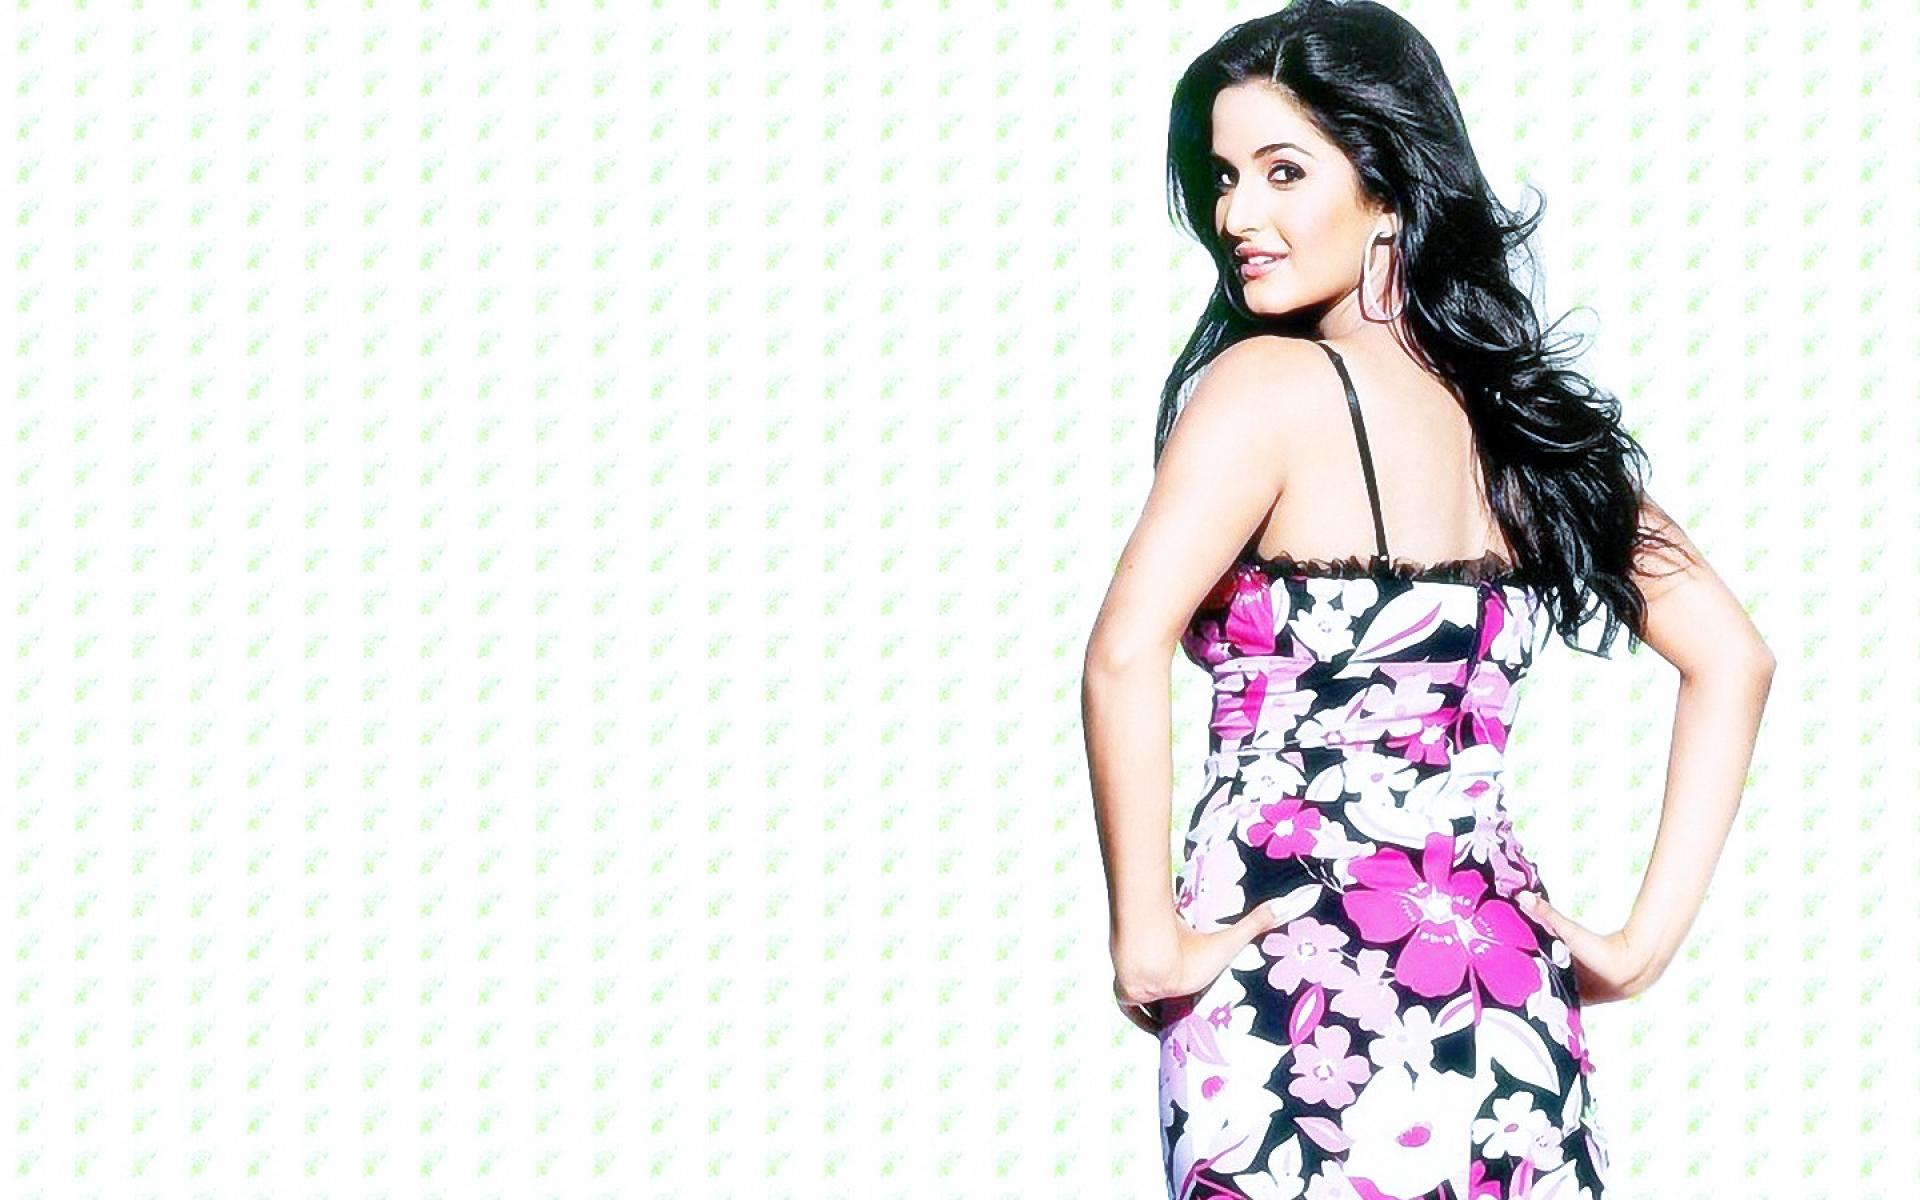 Download 25 Beautiful Katrina Kaif Wallpapers 2015 1920x1200